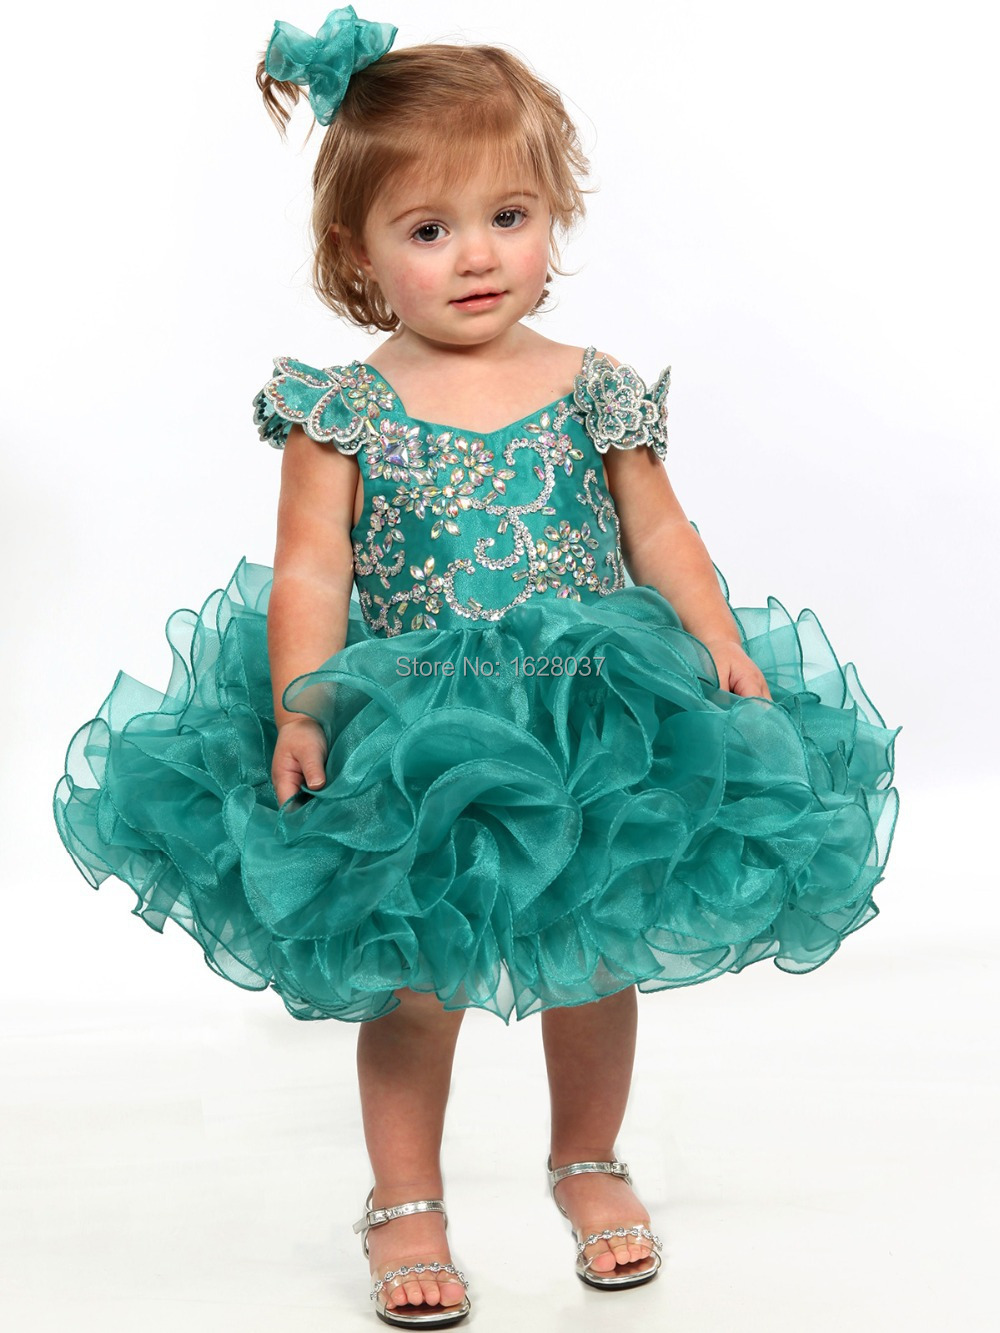 Awesome Baby Suits For Weddings Embellishment - Wedding Dress Ideas ...